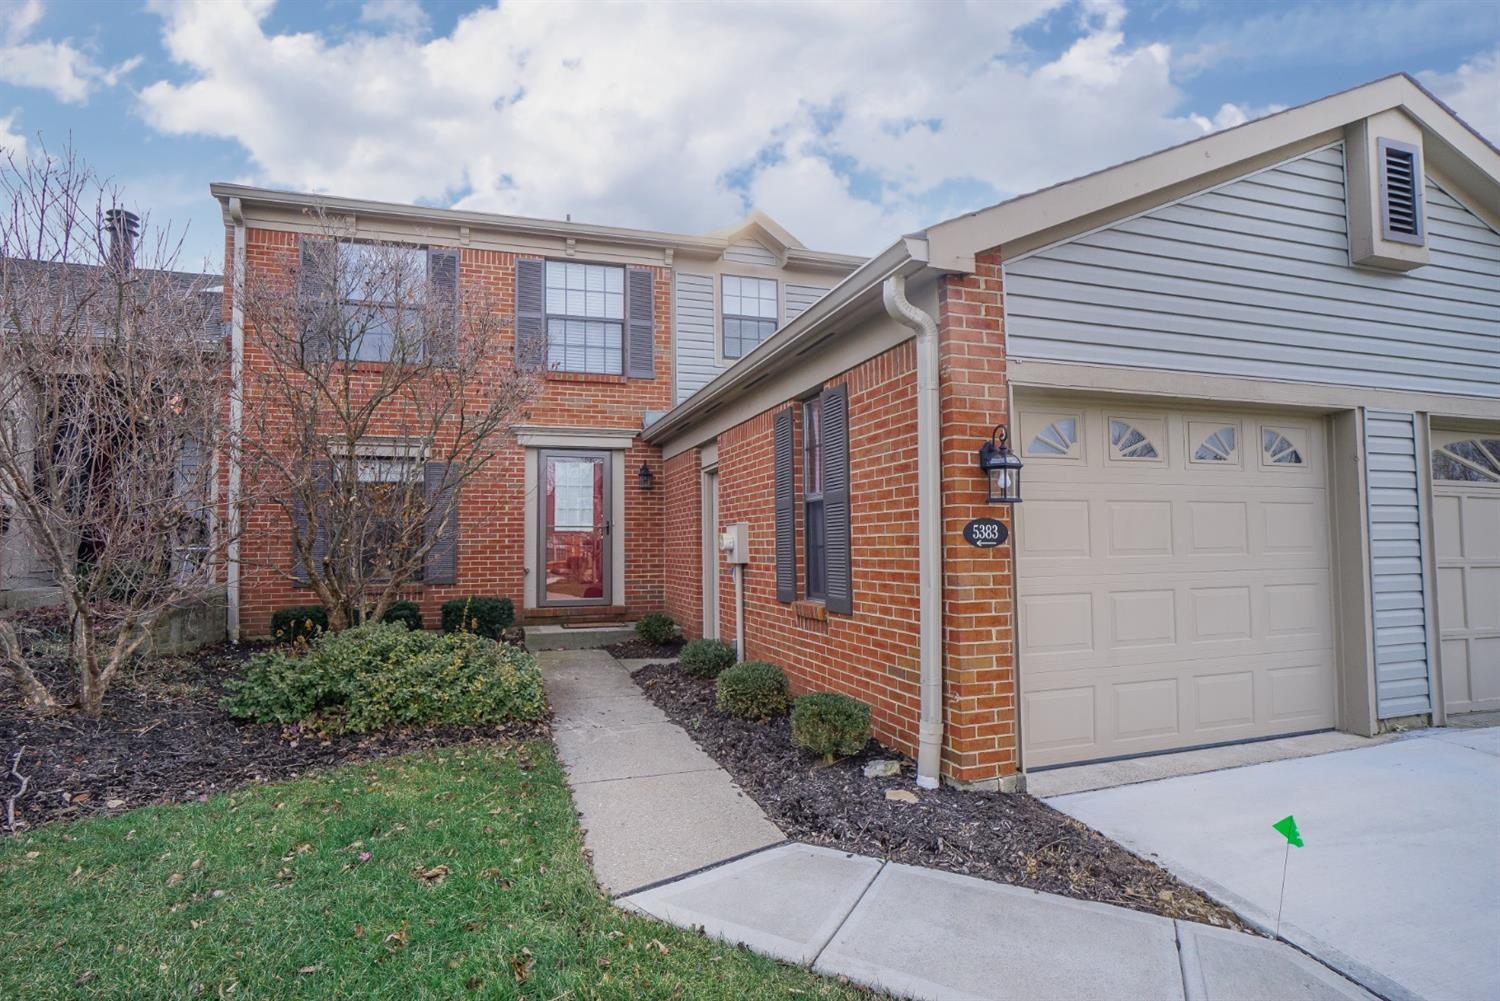 5383 Dickens Dr Sharonville, OH